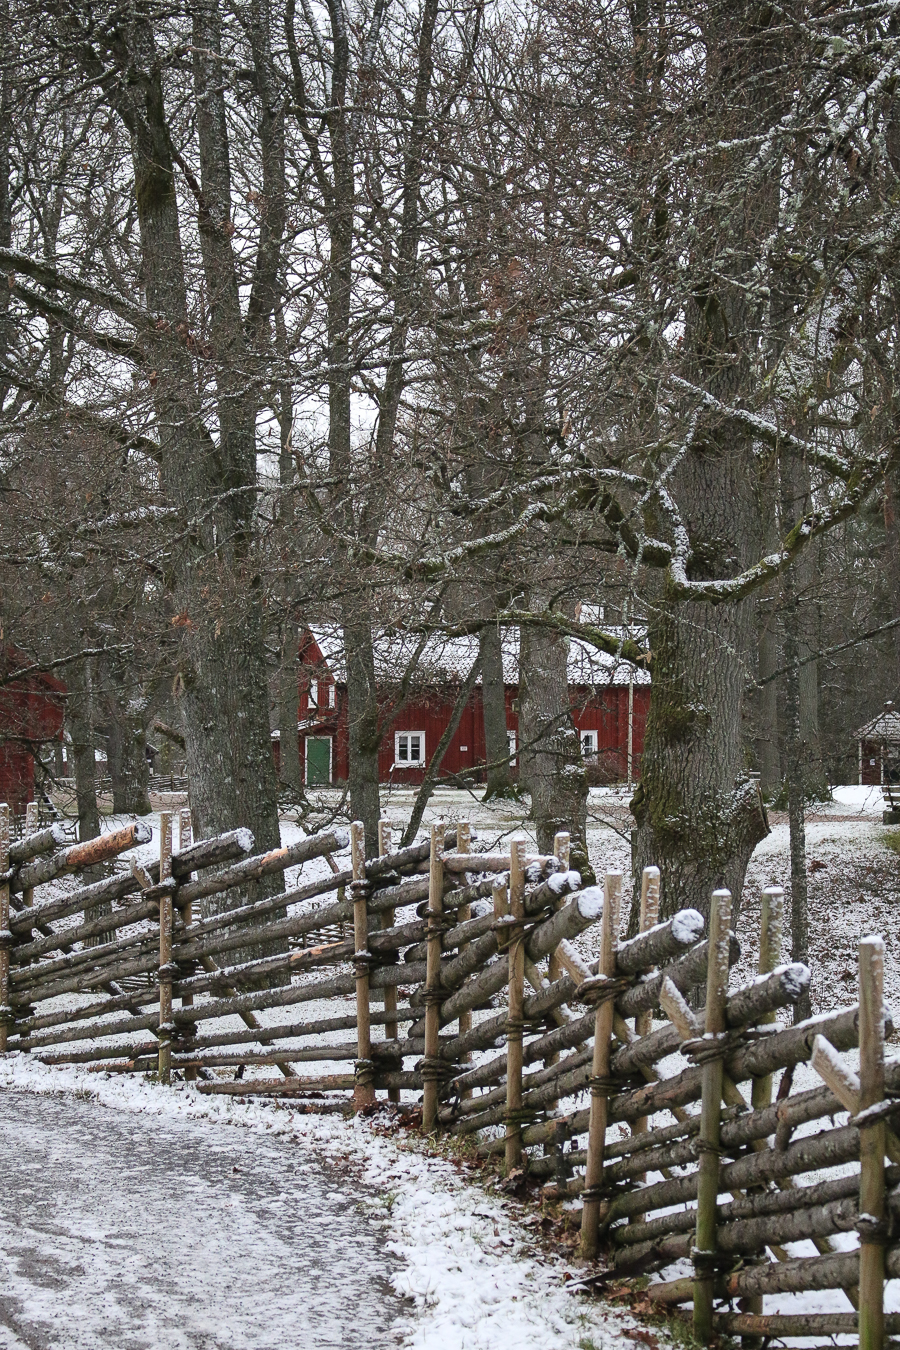 Introducing the Småland Region of Sweden - Forests, Lakes and Tiny Red Houses